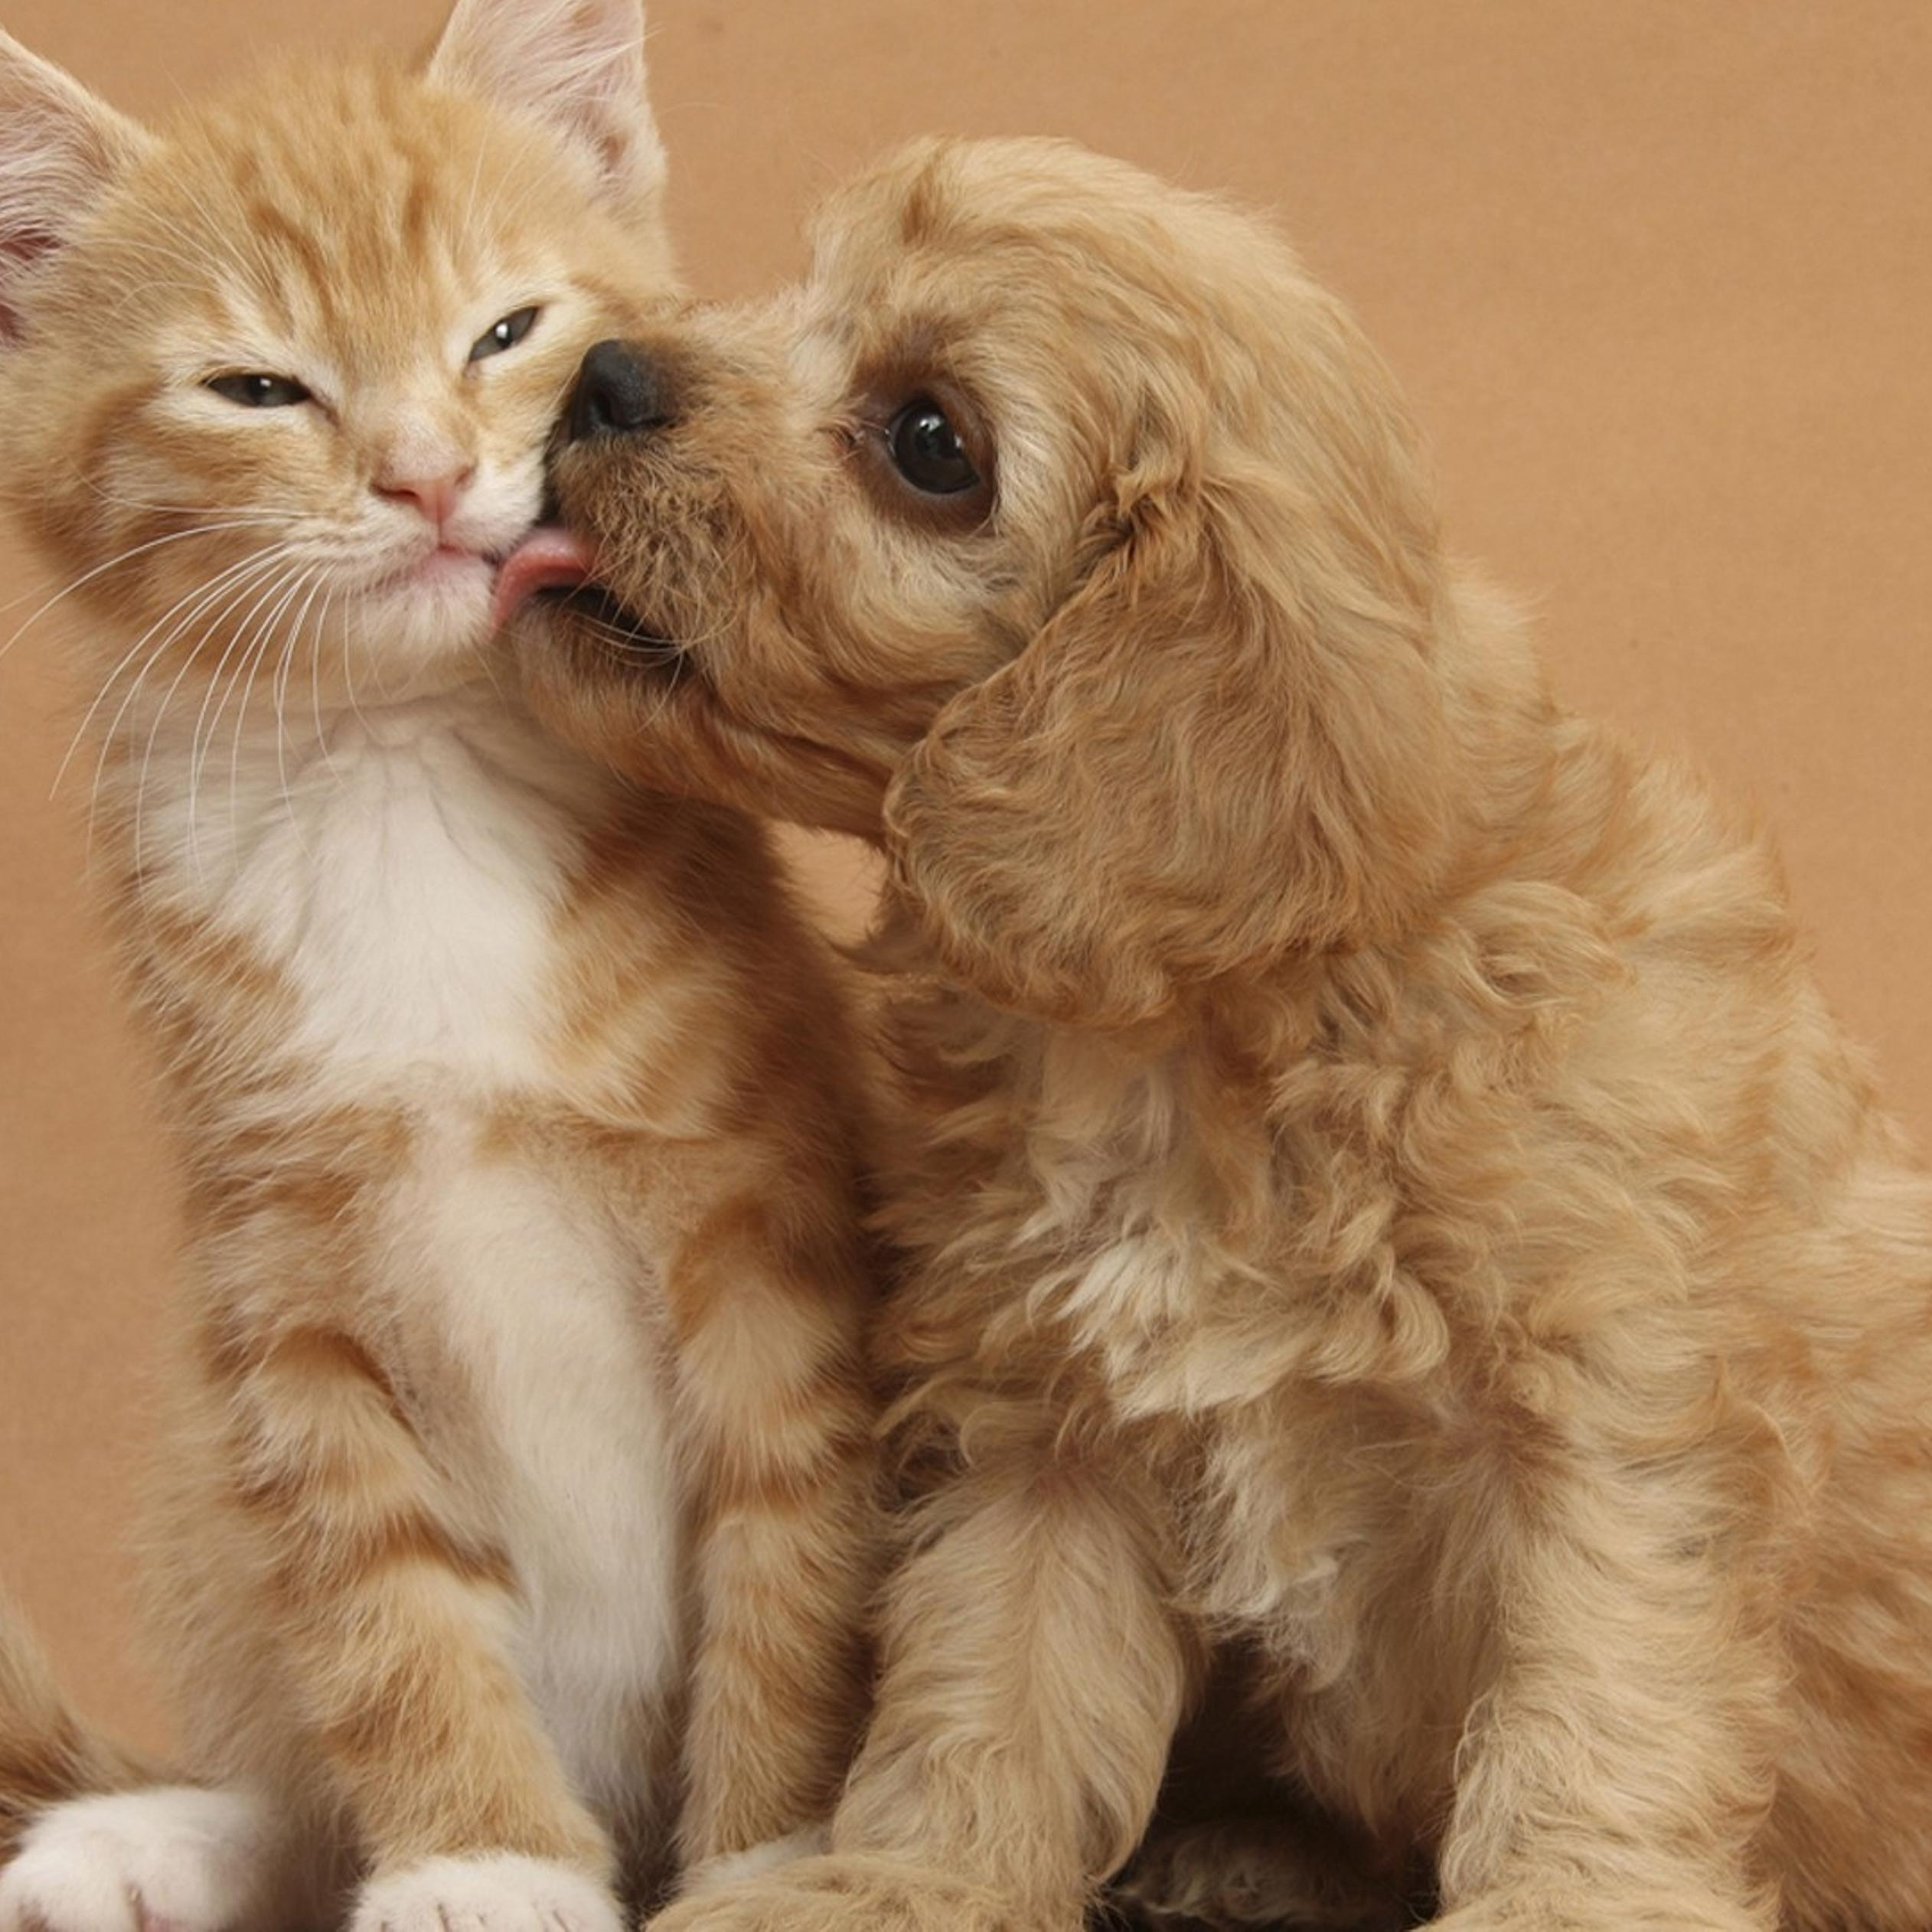 Kiss Between Sweet Dog And Cat Wallpaper Download 2524x2524